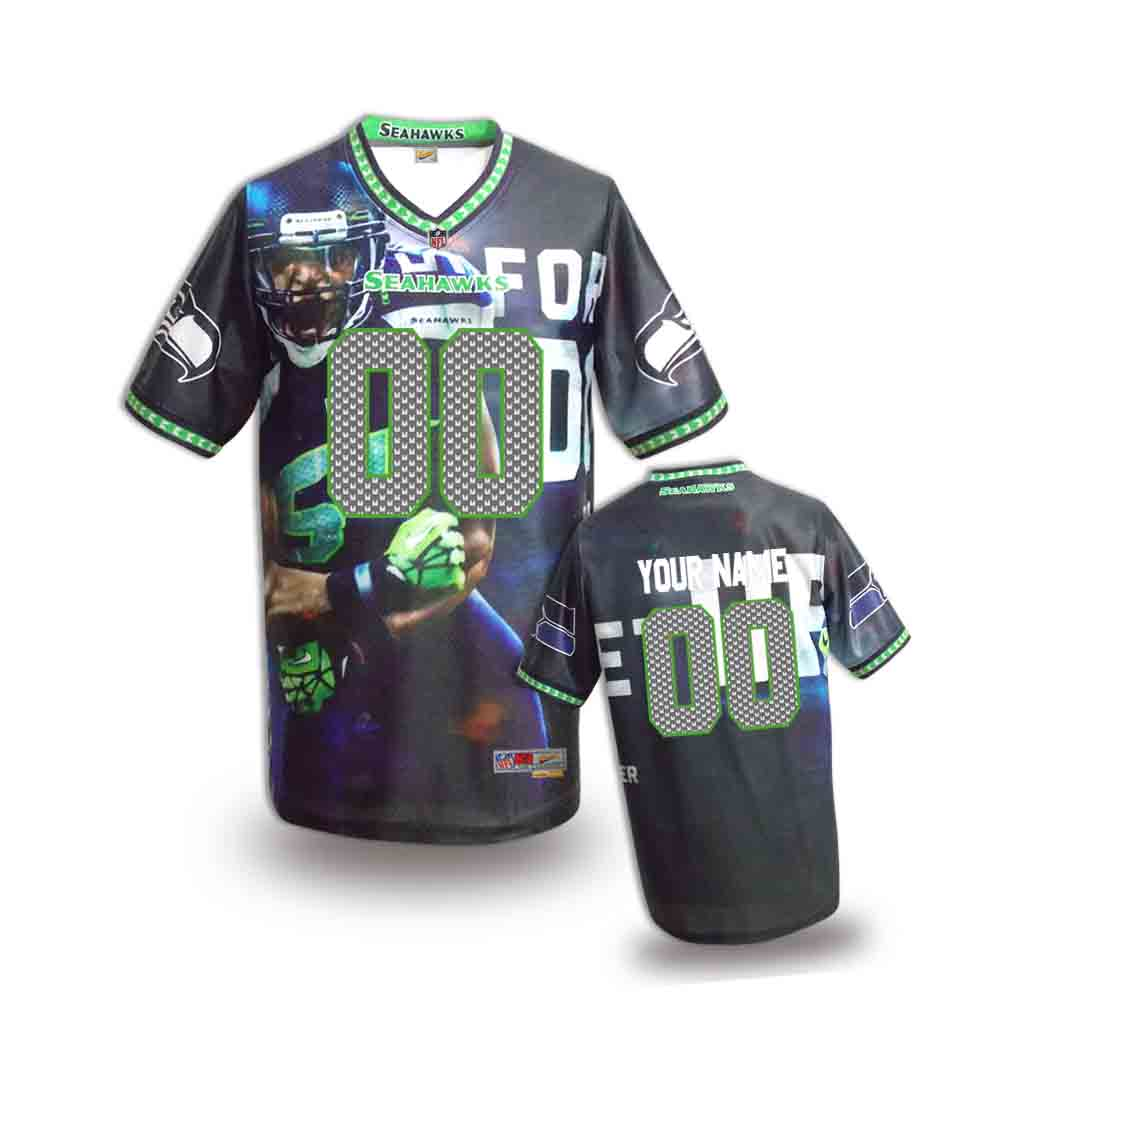 Nike Seahawks Customized Fashion Stitched Youth Jerseys08